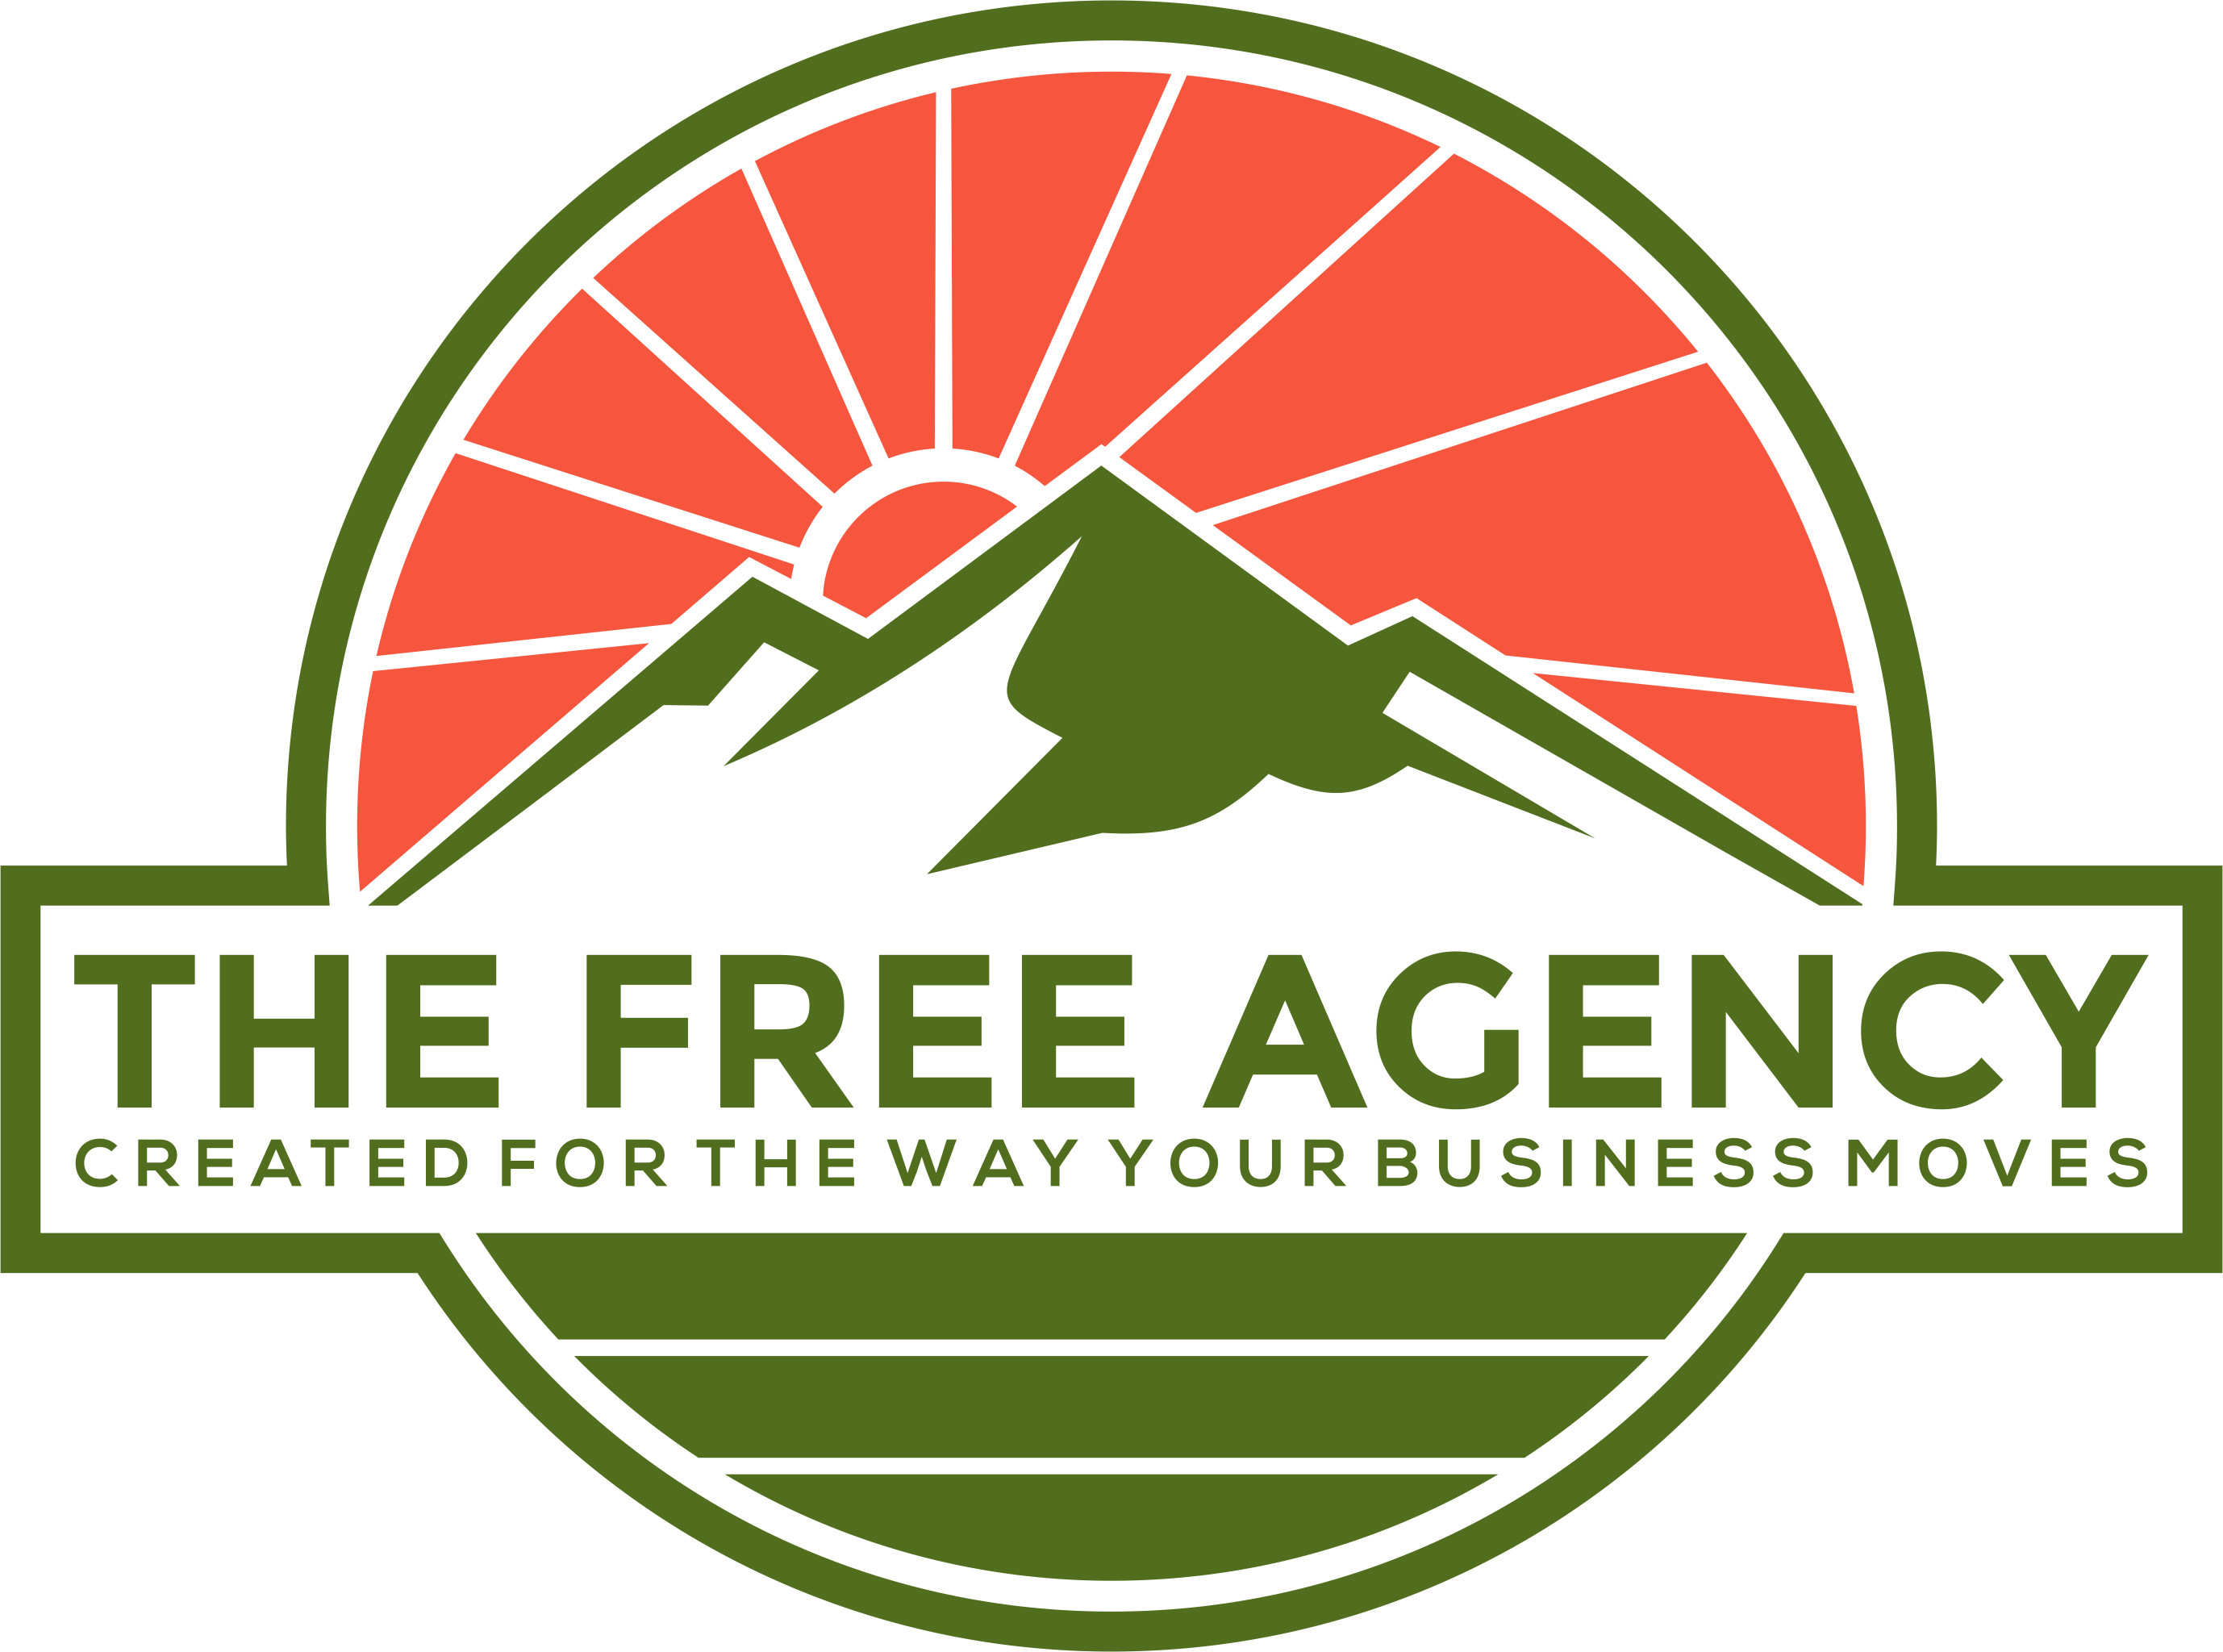 Create a powerful and timeless logo for The Free Agency, an experiential marketing company.